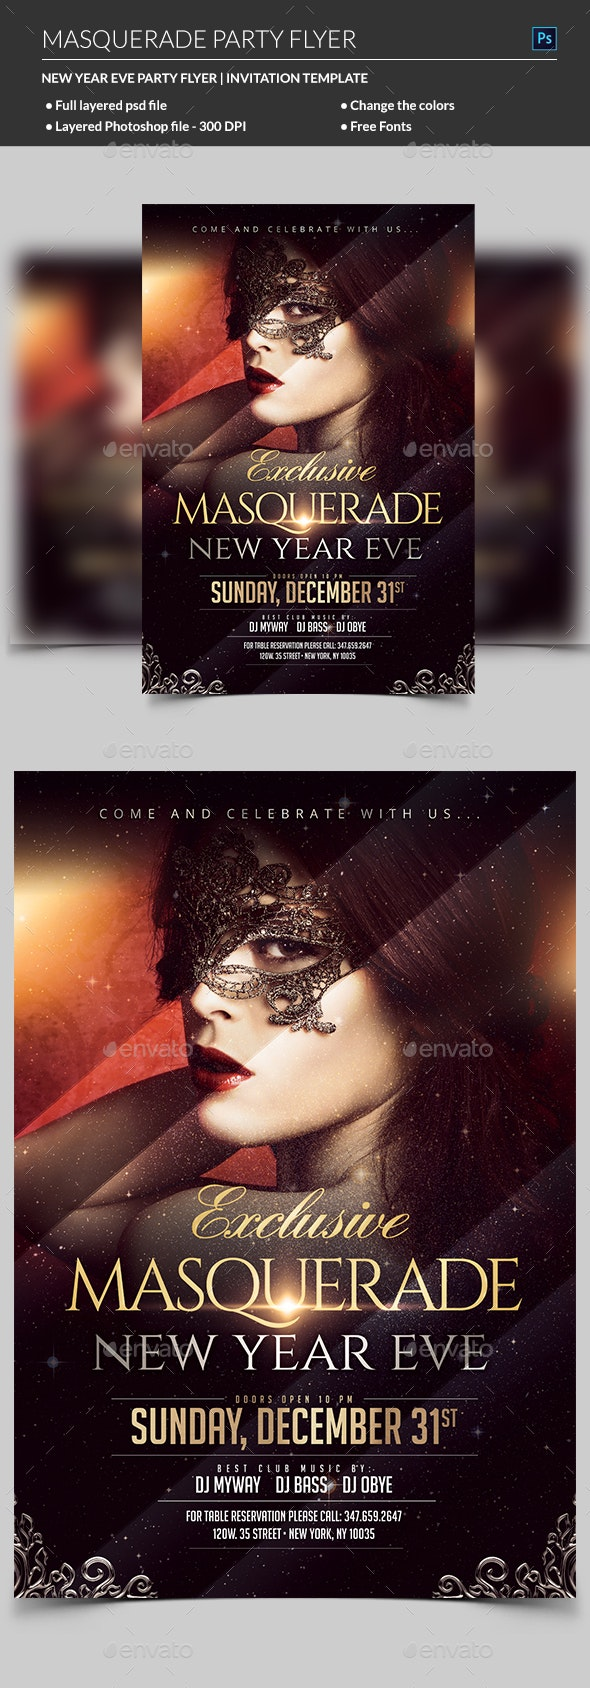 Masquerade Flyer - Clubs & Parties Events